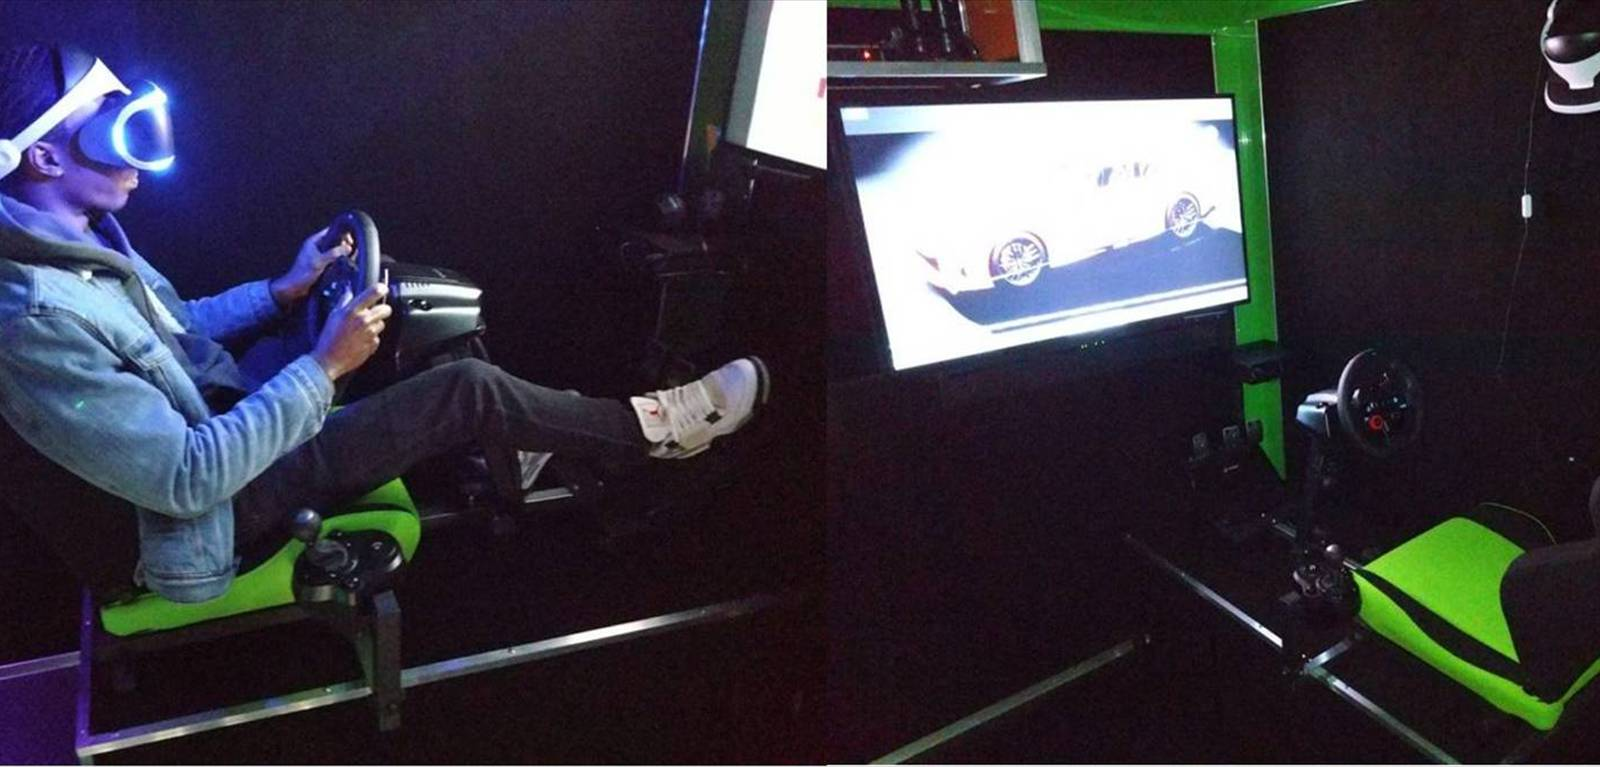 Our Virtual Reality Racing Simulator is AMAZING!